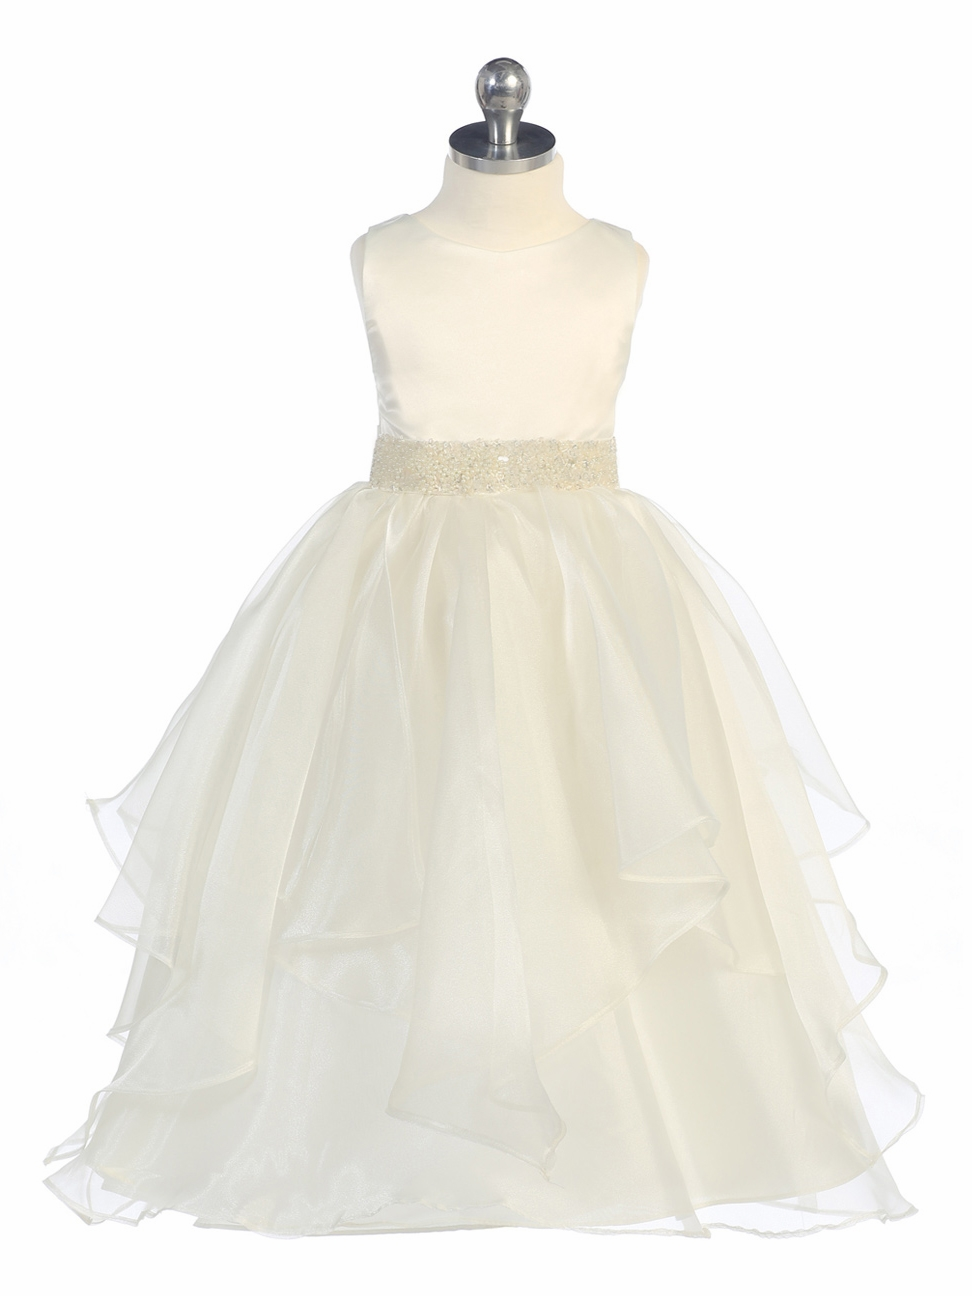 Pageant dresses gowns pinkprincess ivory satin organza layered dress izmirmasajfo